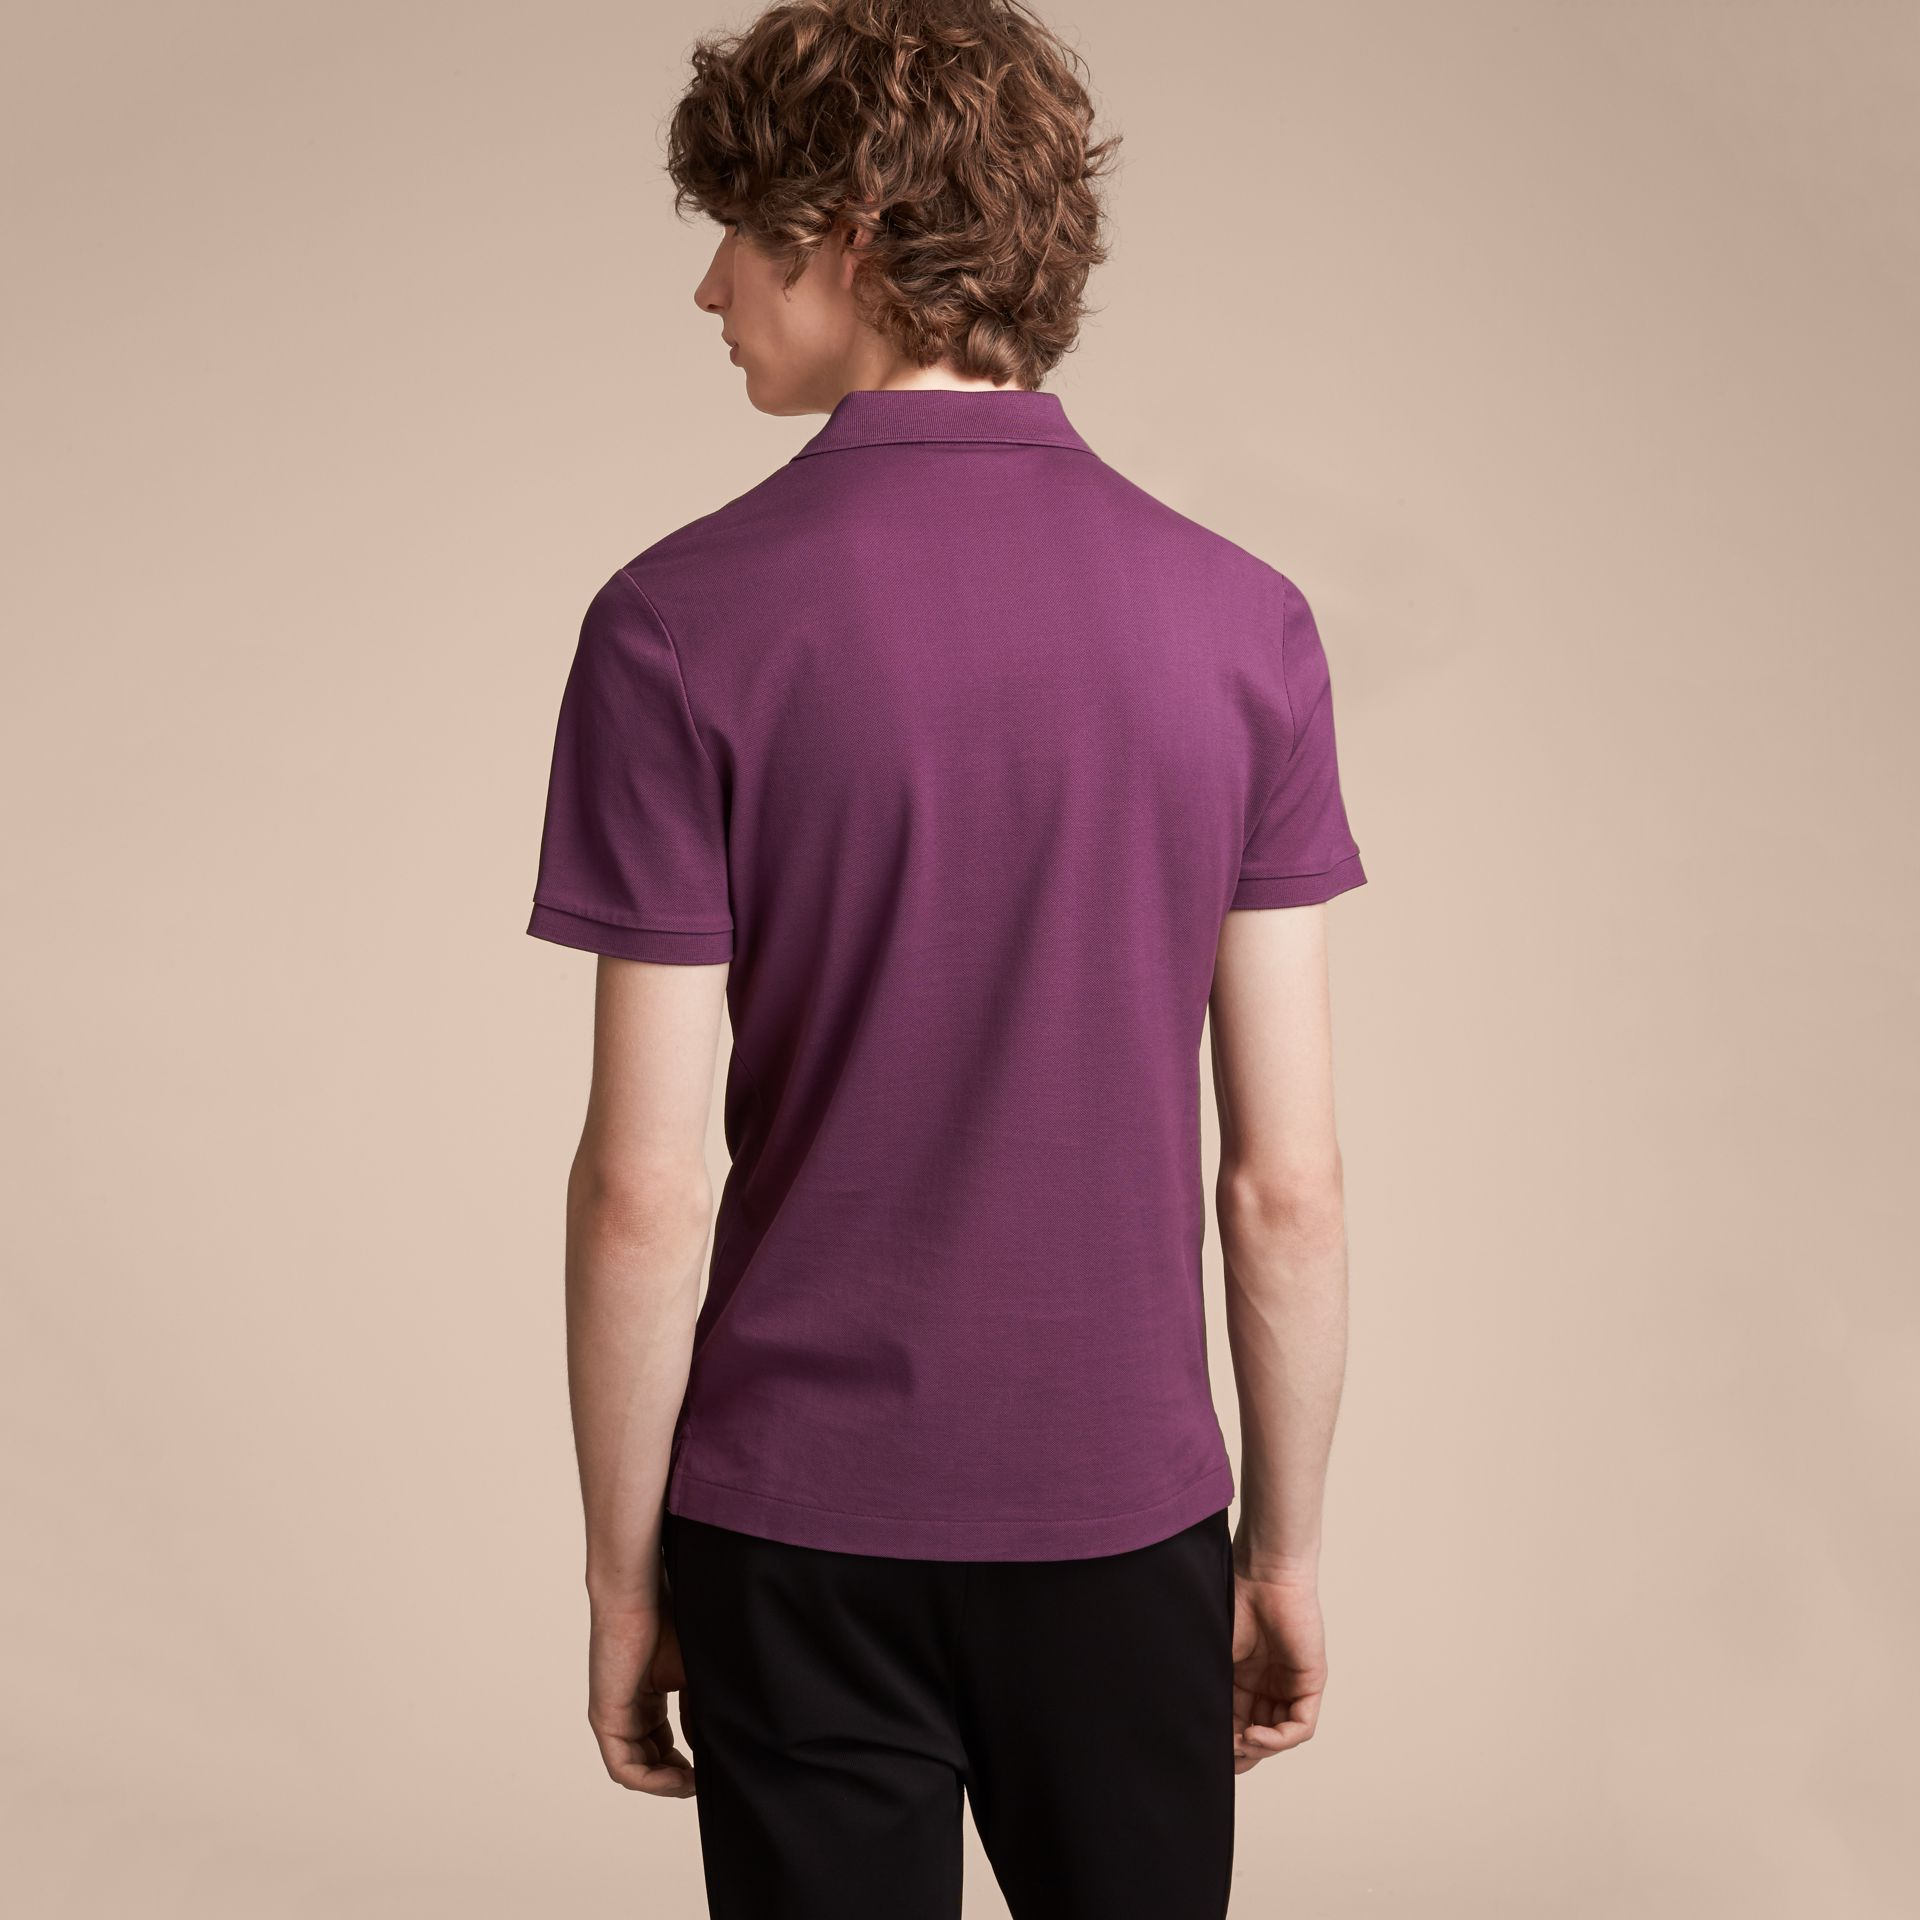 Cotton Piqué Polo Shirt in Heather - Men | Burberry - gallery image 3